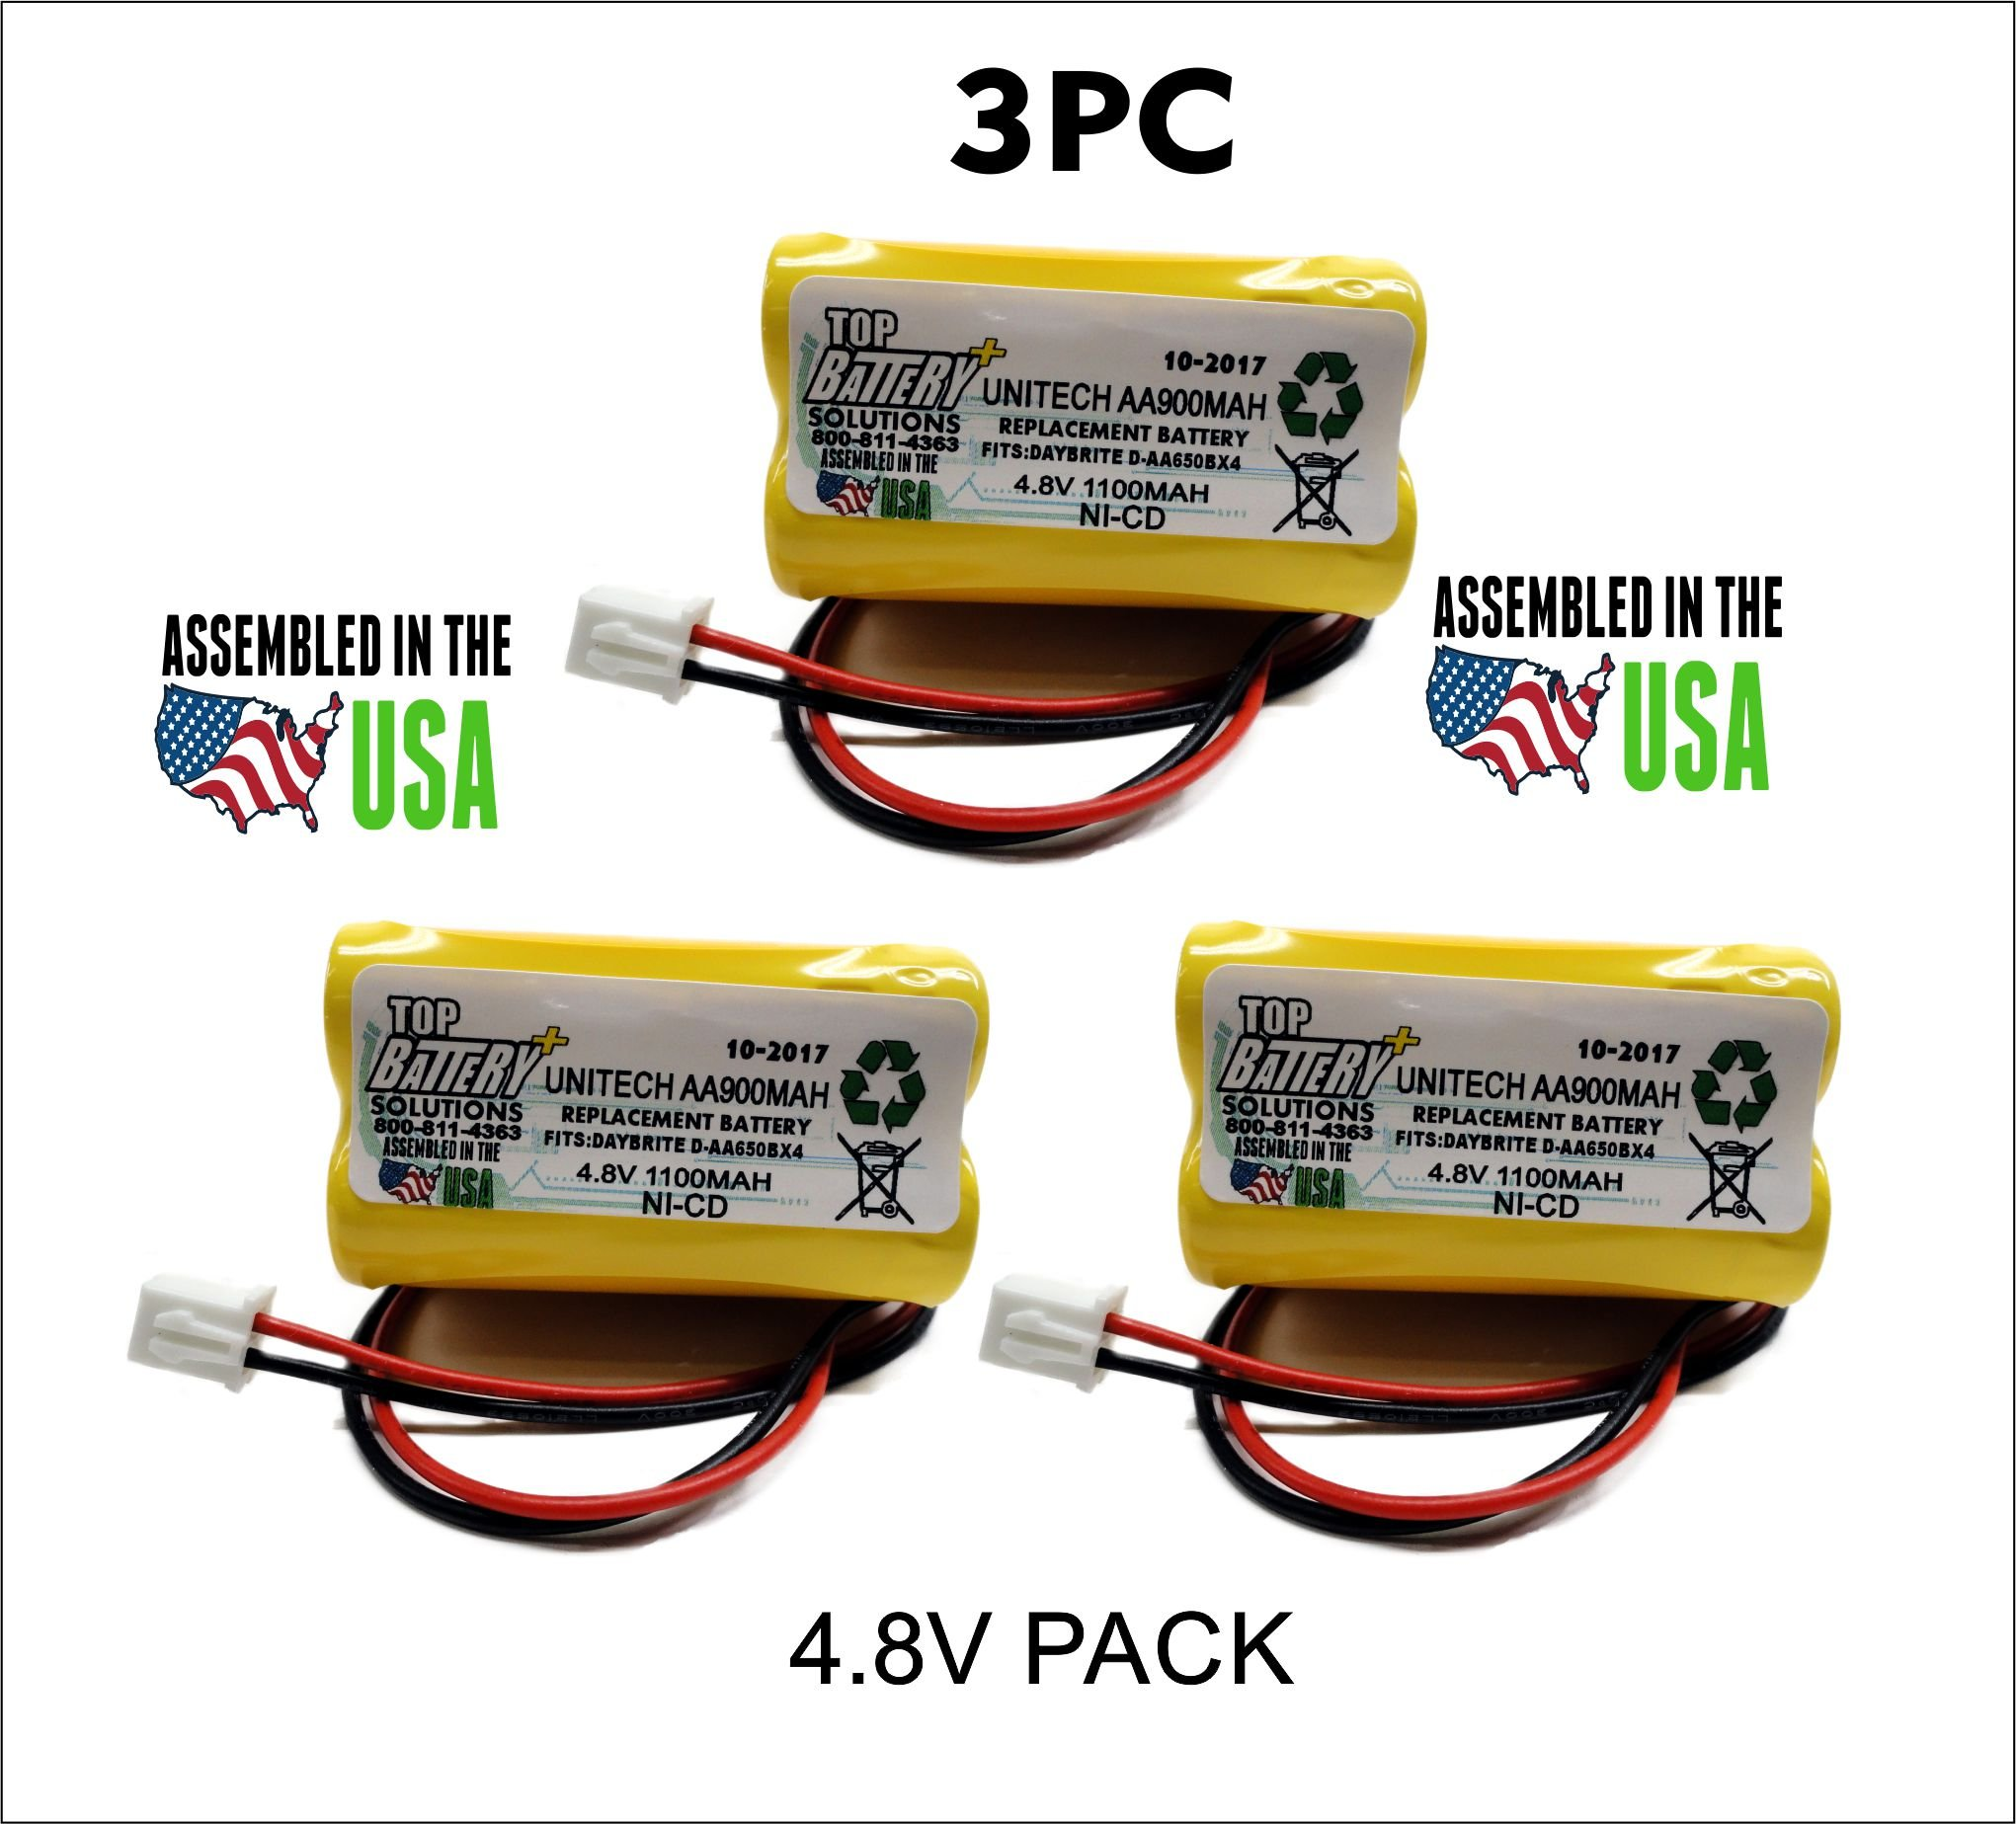 3pc Unitech Ni-CD AA900mAh 4.8V Replacement Battery by TOP BATTERY SOLUTIONS